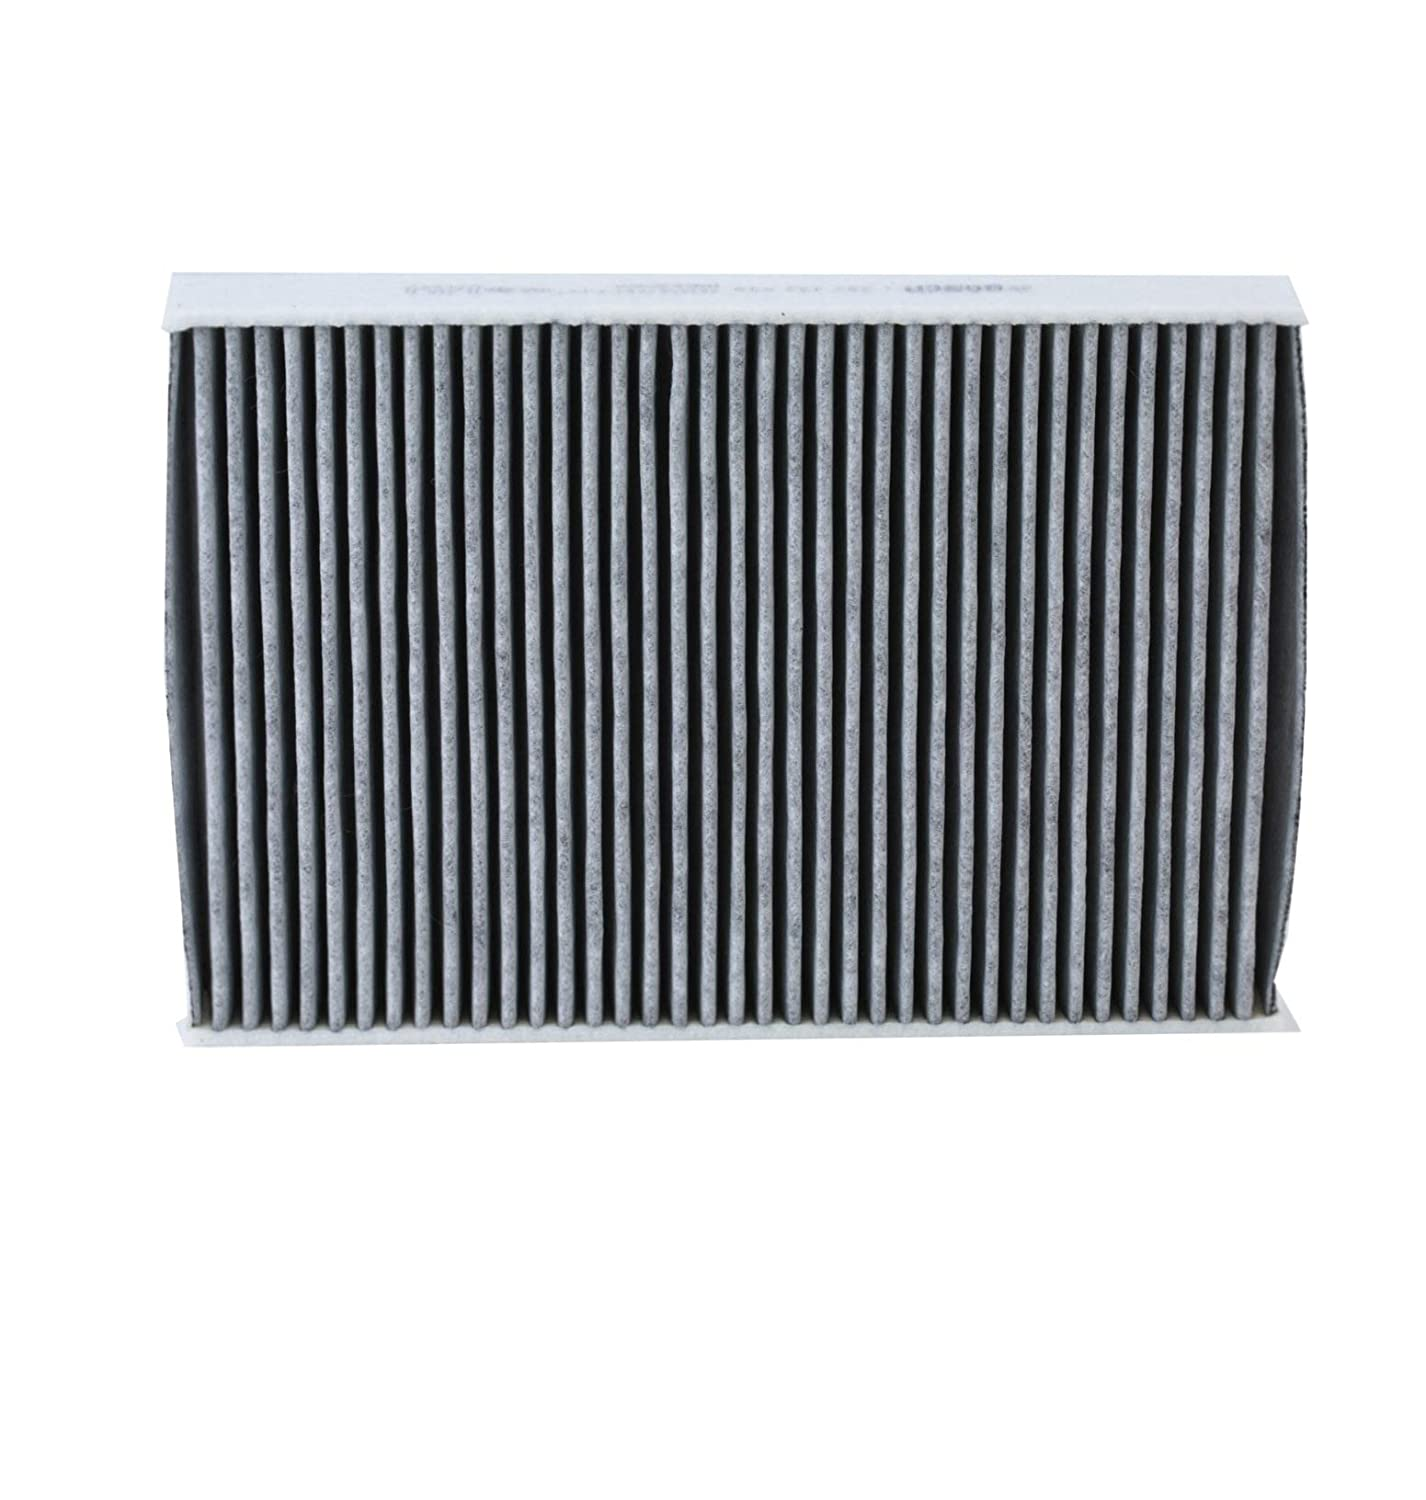 Cikuso Cabin Air Filter 10-05 for BMW E46 X3 323i 323Ci 325Xi 325i 328i 330Ci 330Xi M3